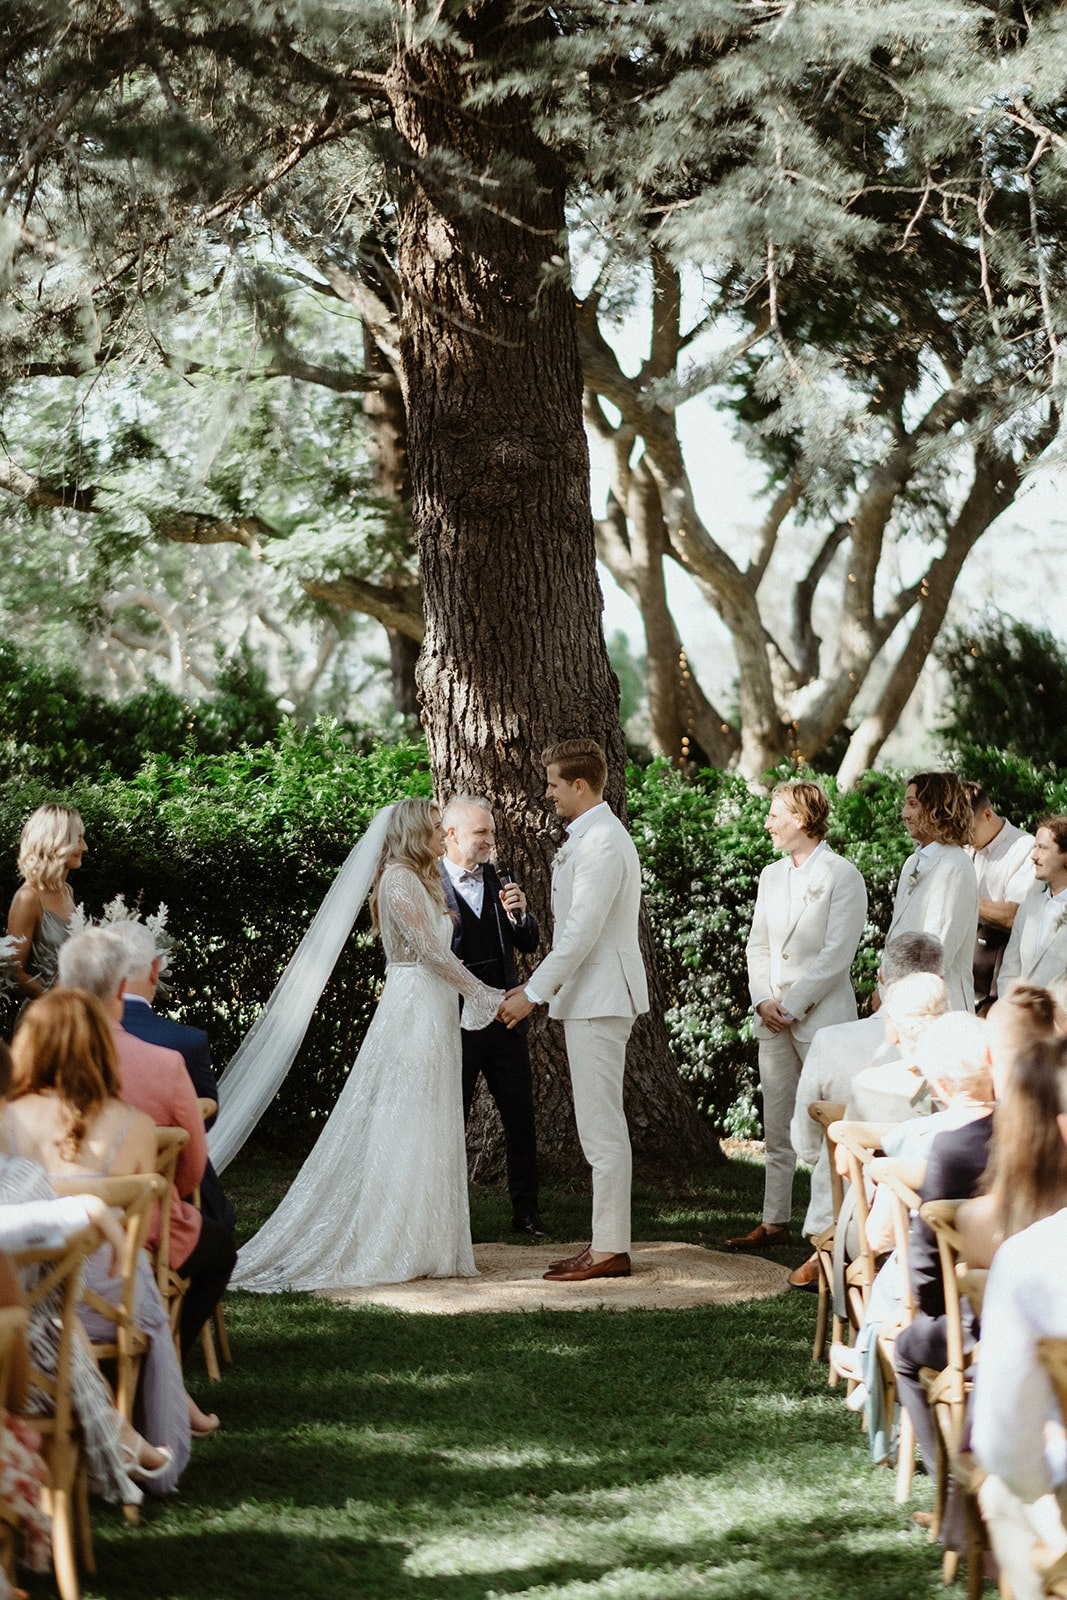 Bride and groom standing under tree holding hands